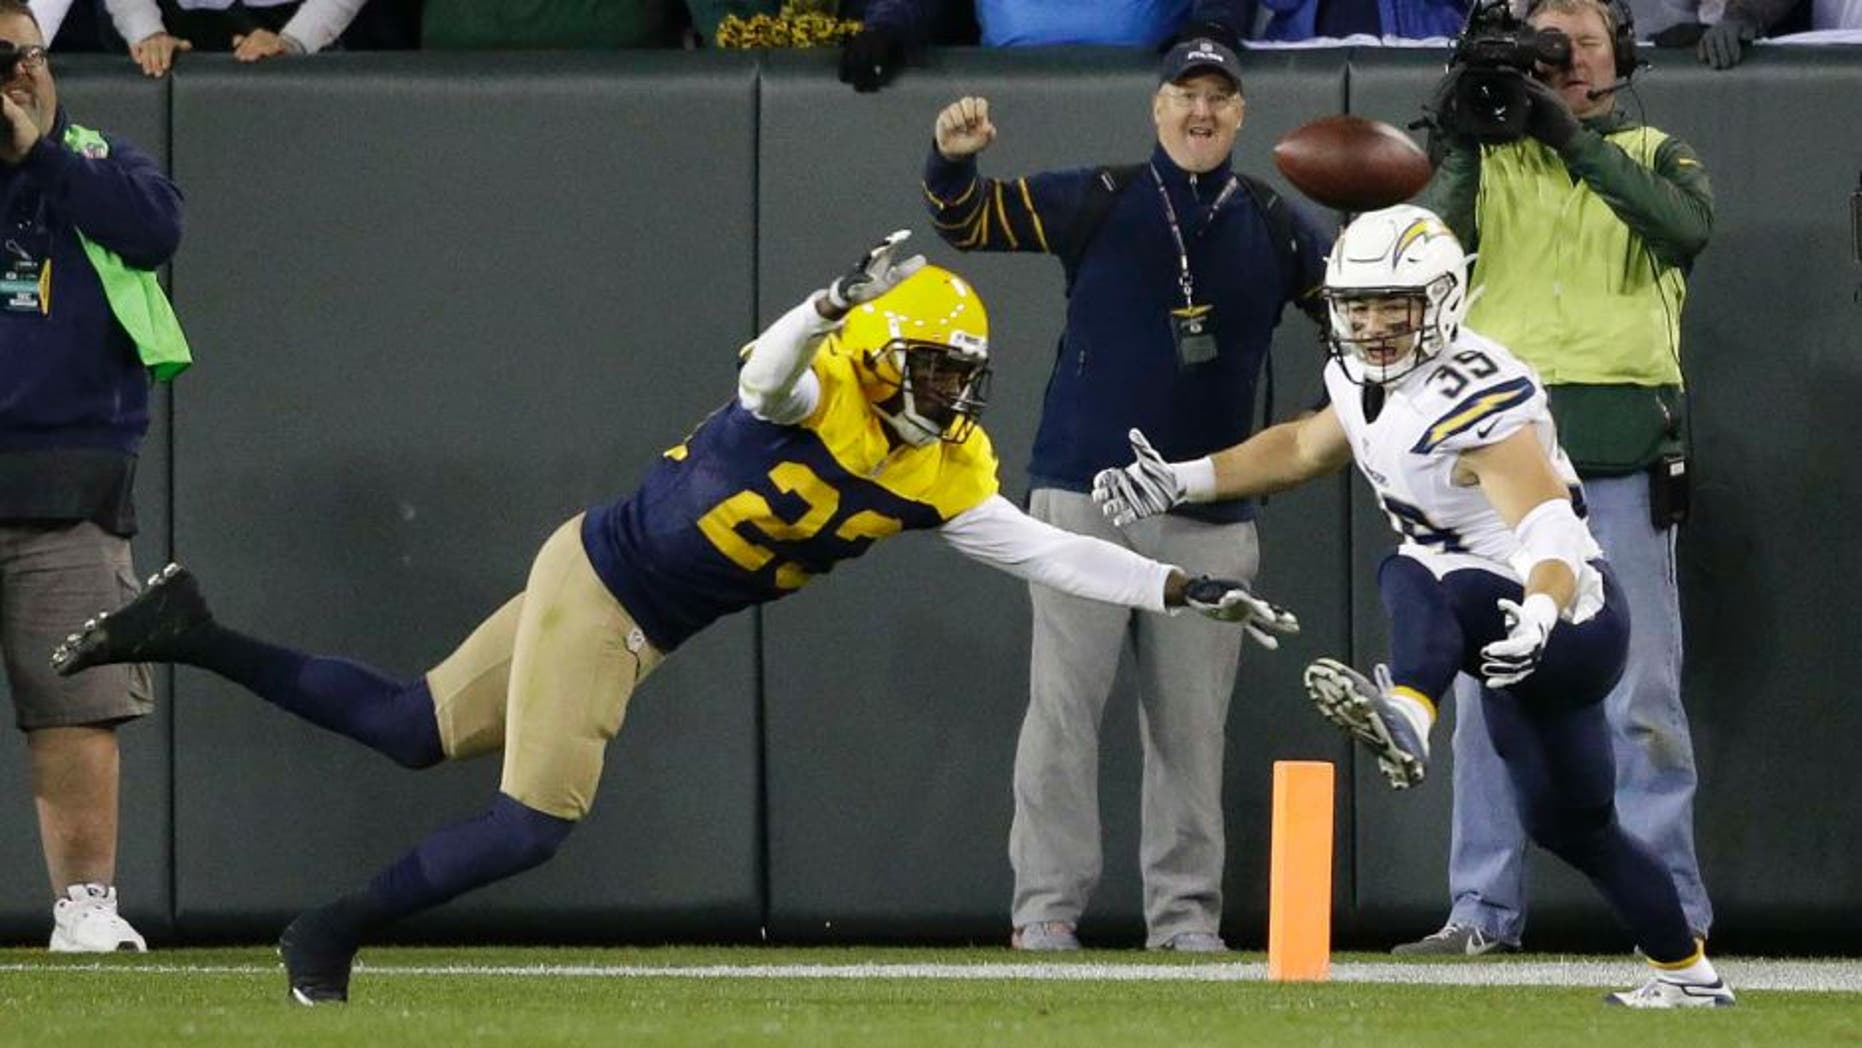 The Green Bay Packers' Damarious Randall (left) deflects a pass intended for the San Diego Chargers' Danny Woodhead on the final play of an NFL game, Sunday, Oct. 18, 2015, in Green Bay, Wis. The Packers won 27-20.